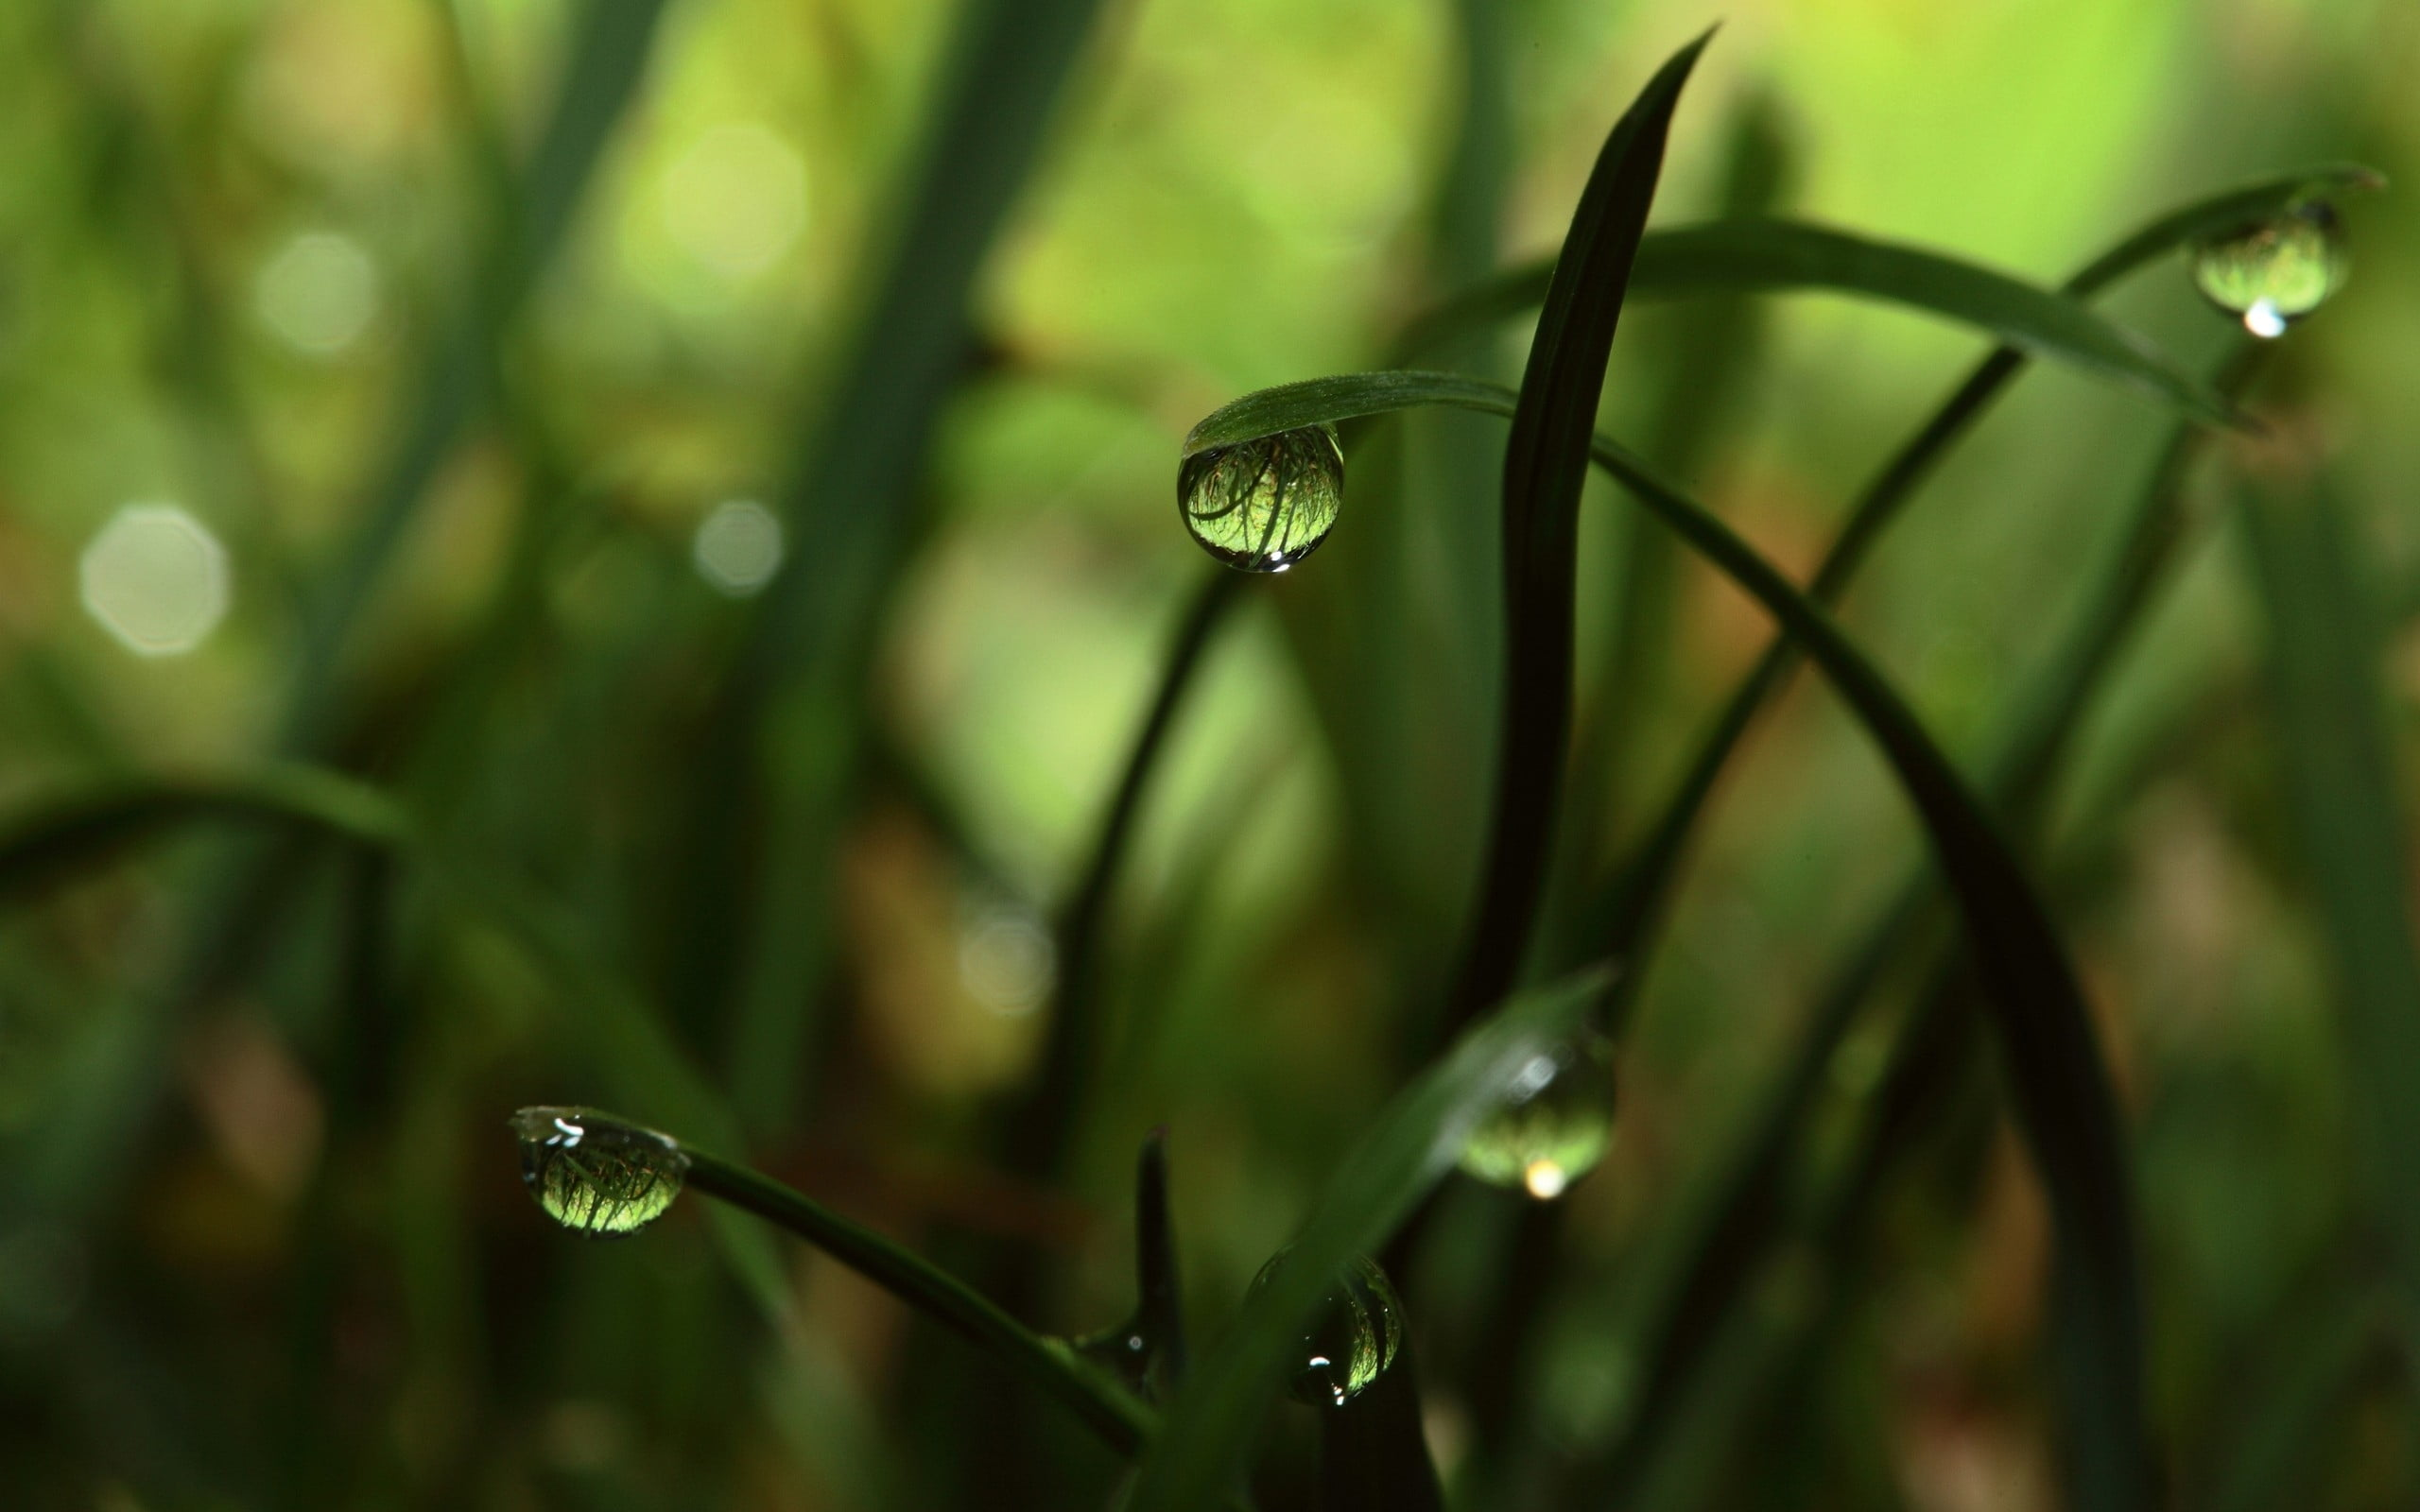 Green grass water dew photography HD wallpaper | Wallpaper Flare